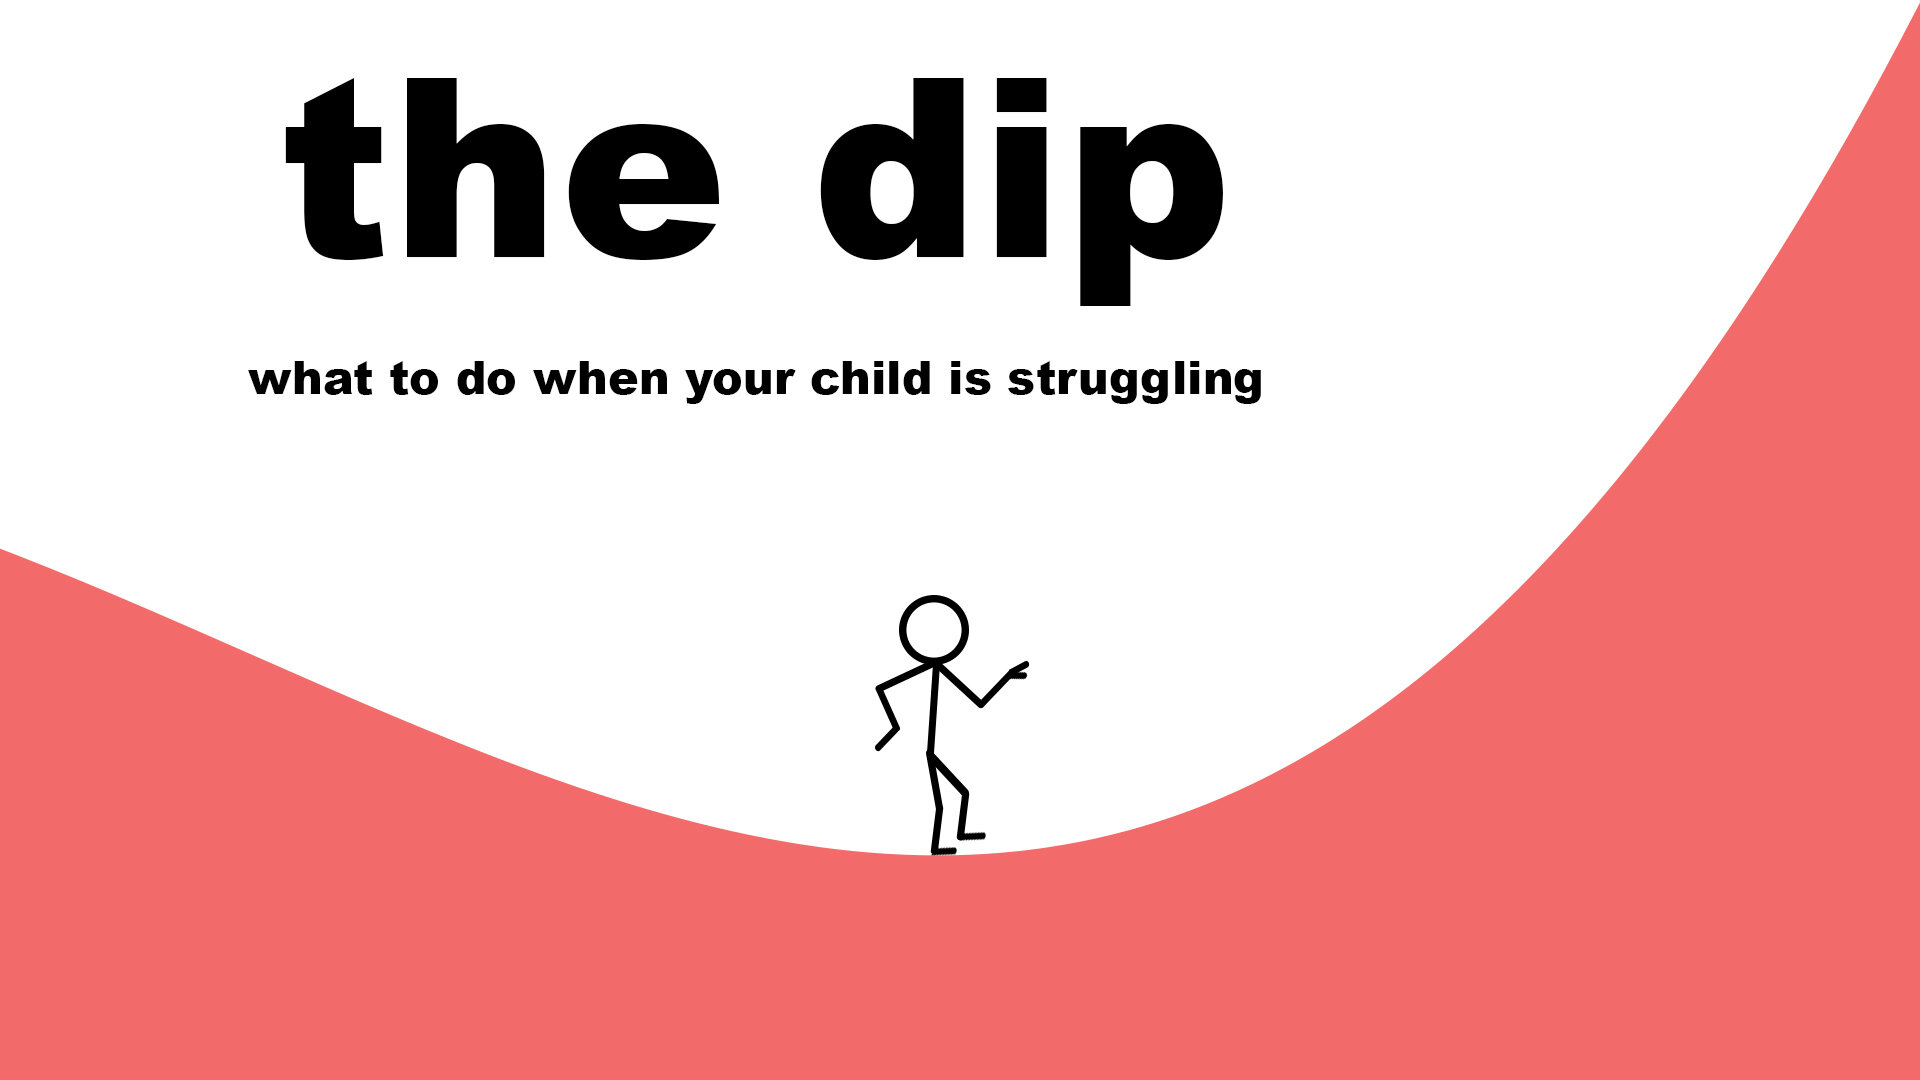 TheDip_red.jpg